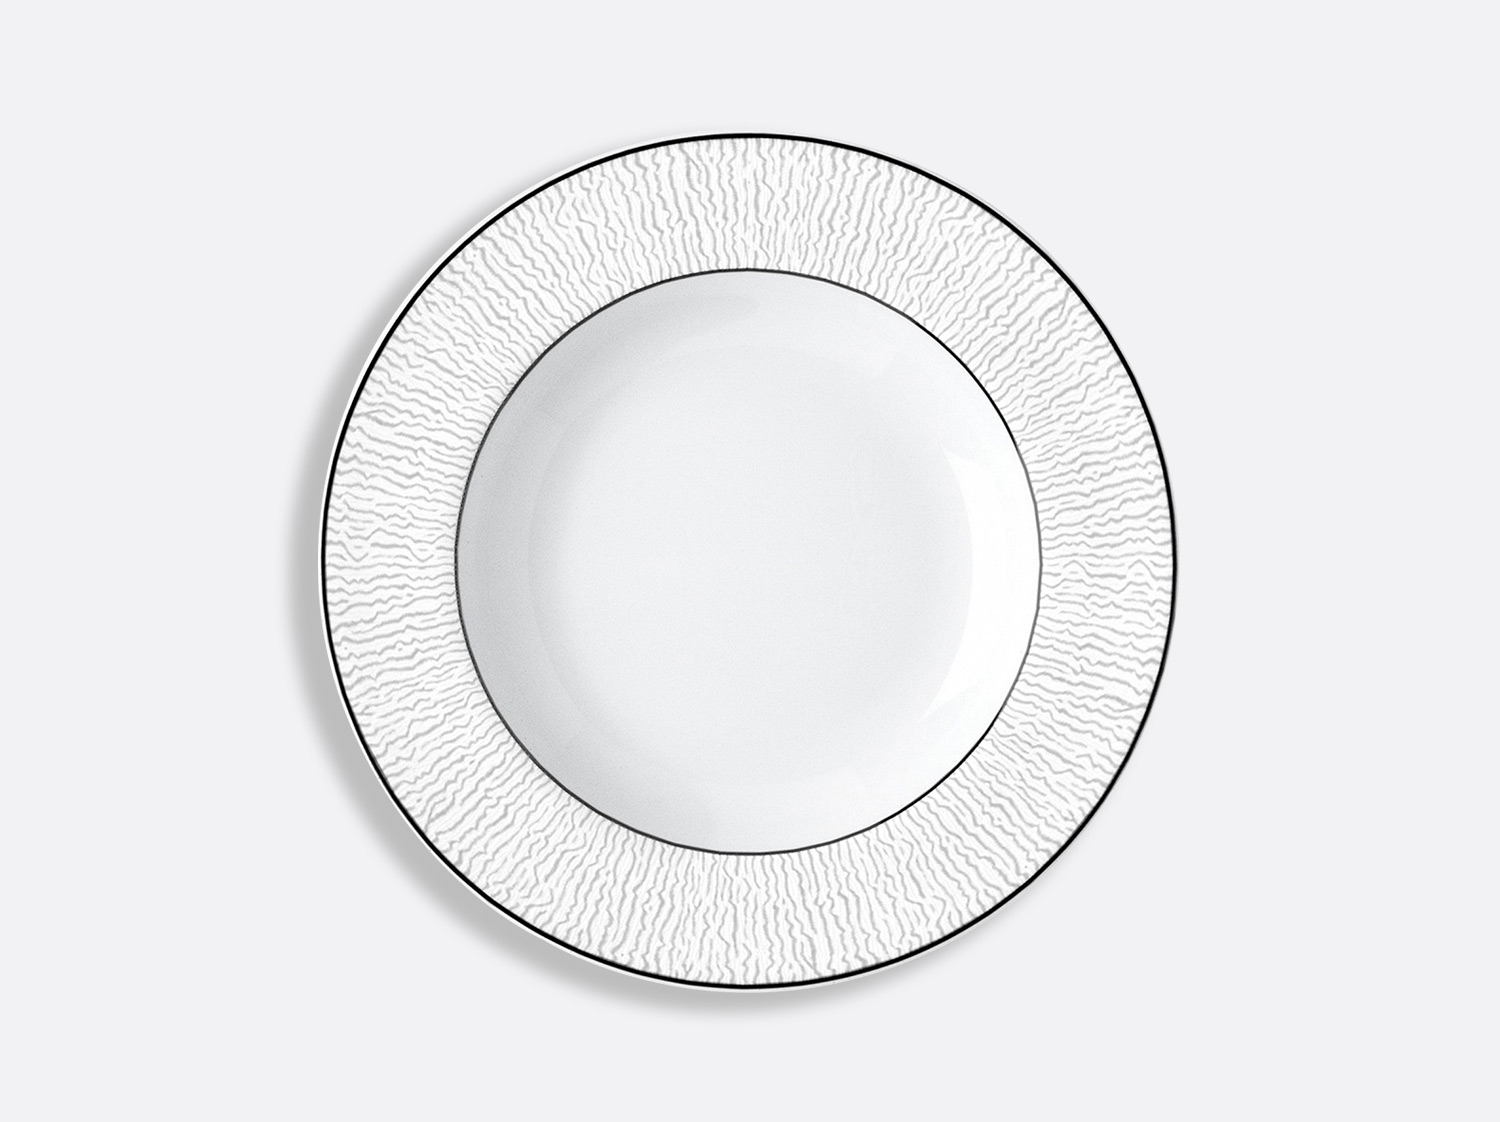 China Rim soup 22,5 cm of the collection Dune | Bernardaud